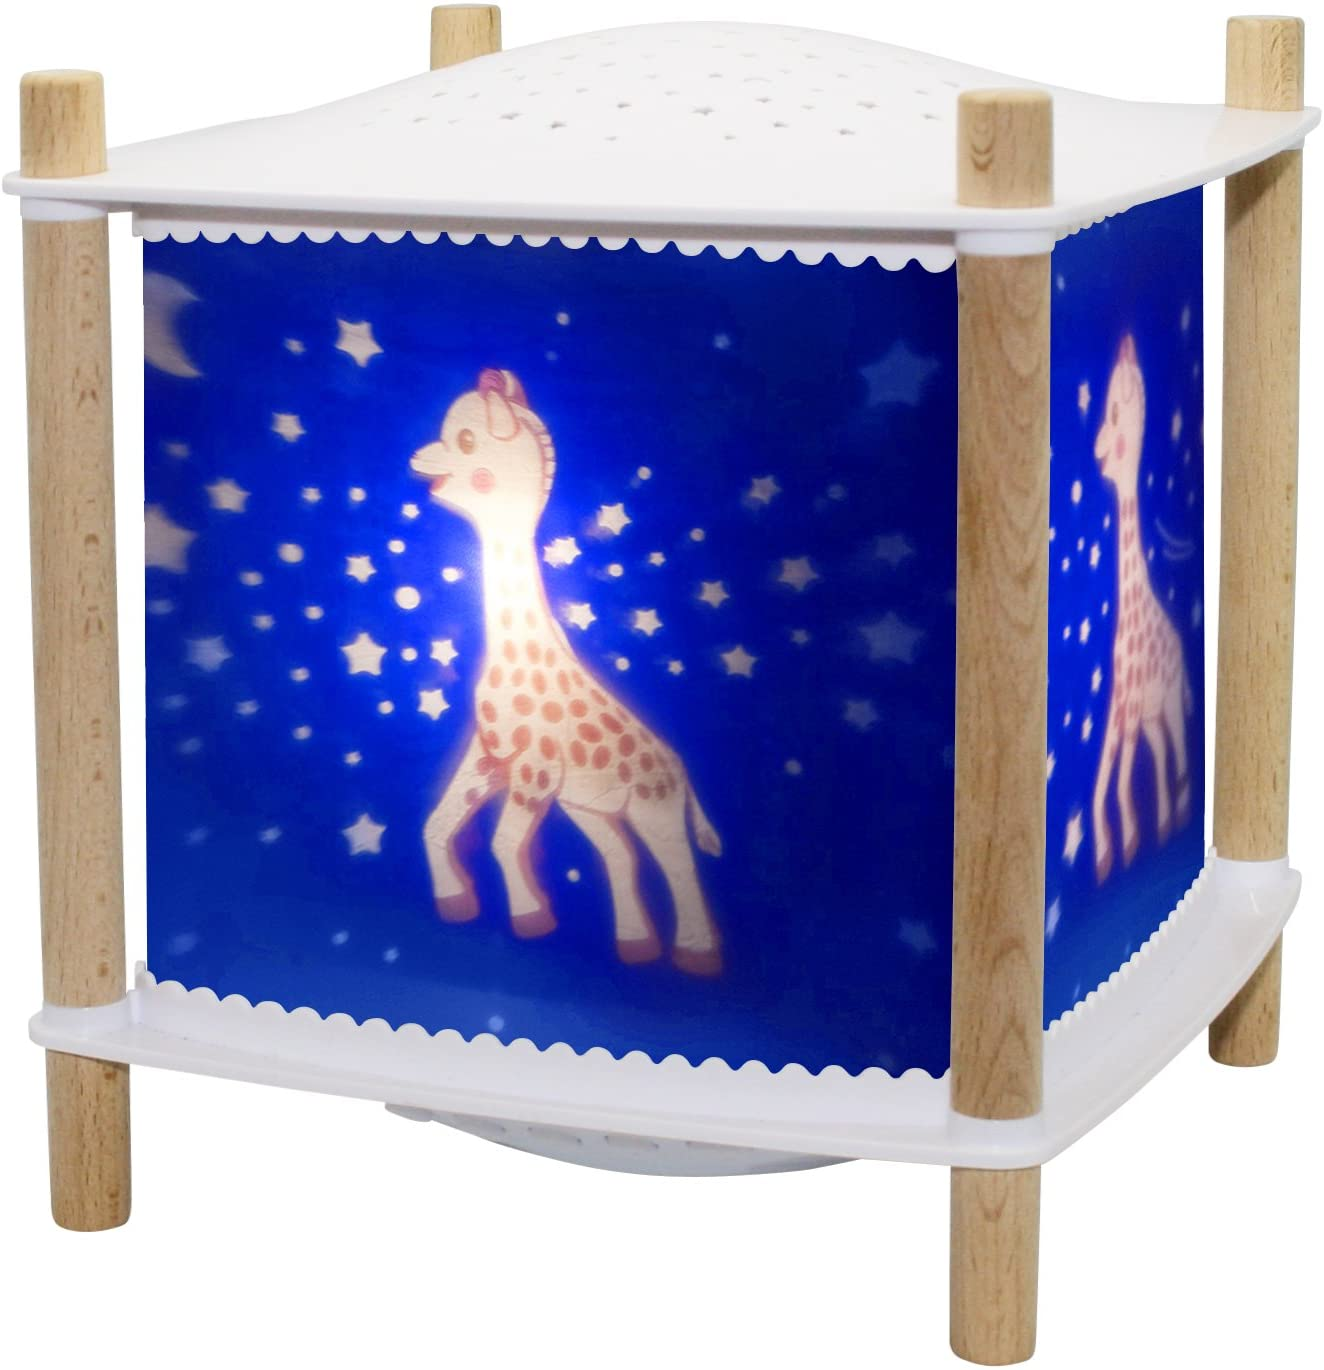 TROUSSELIER - Sophie The Giraffe - Night Light - Lantern Revolution 2.0 - Cry Detector & Musical & Wireless & USB Rechargeable